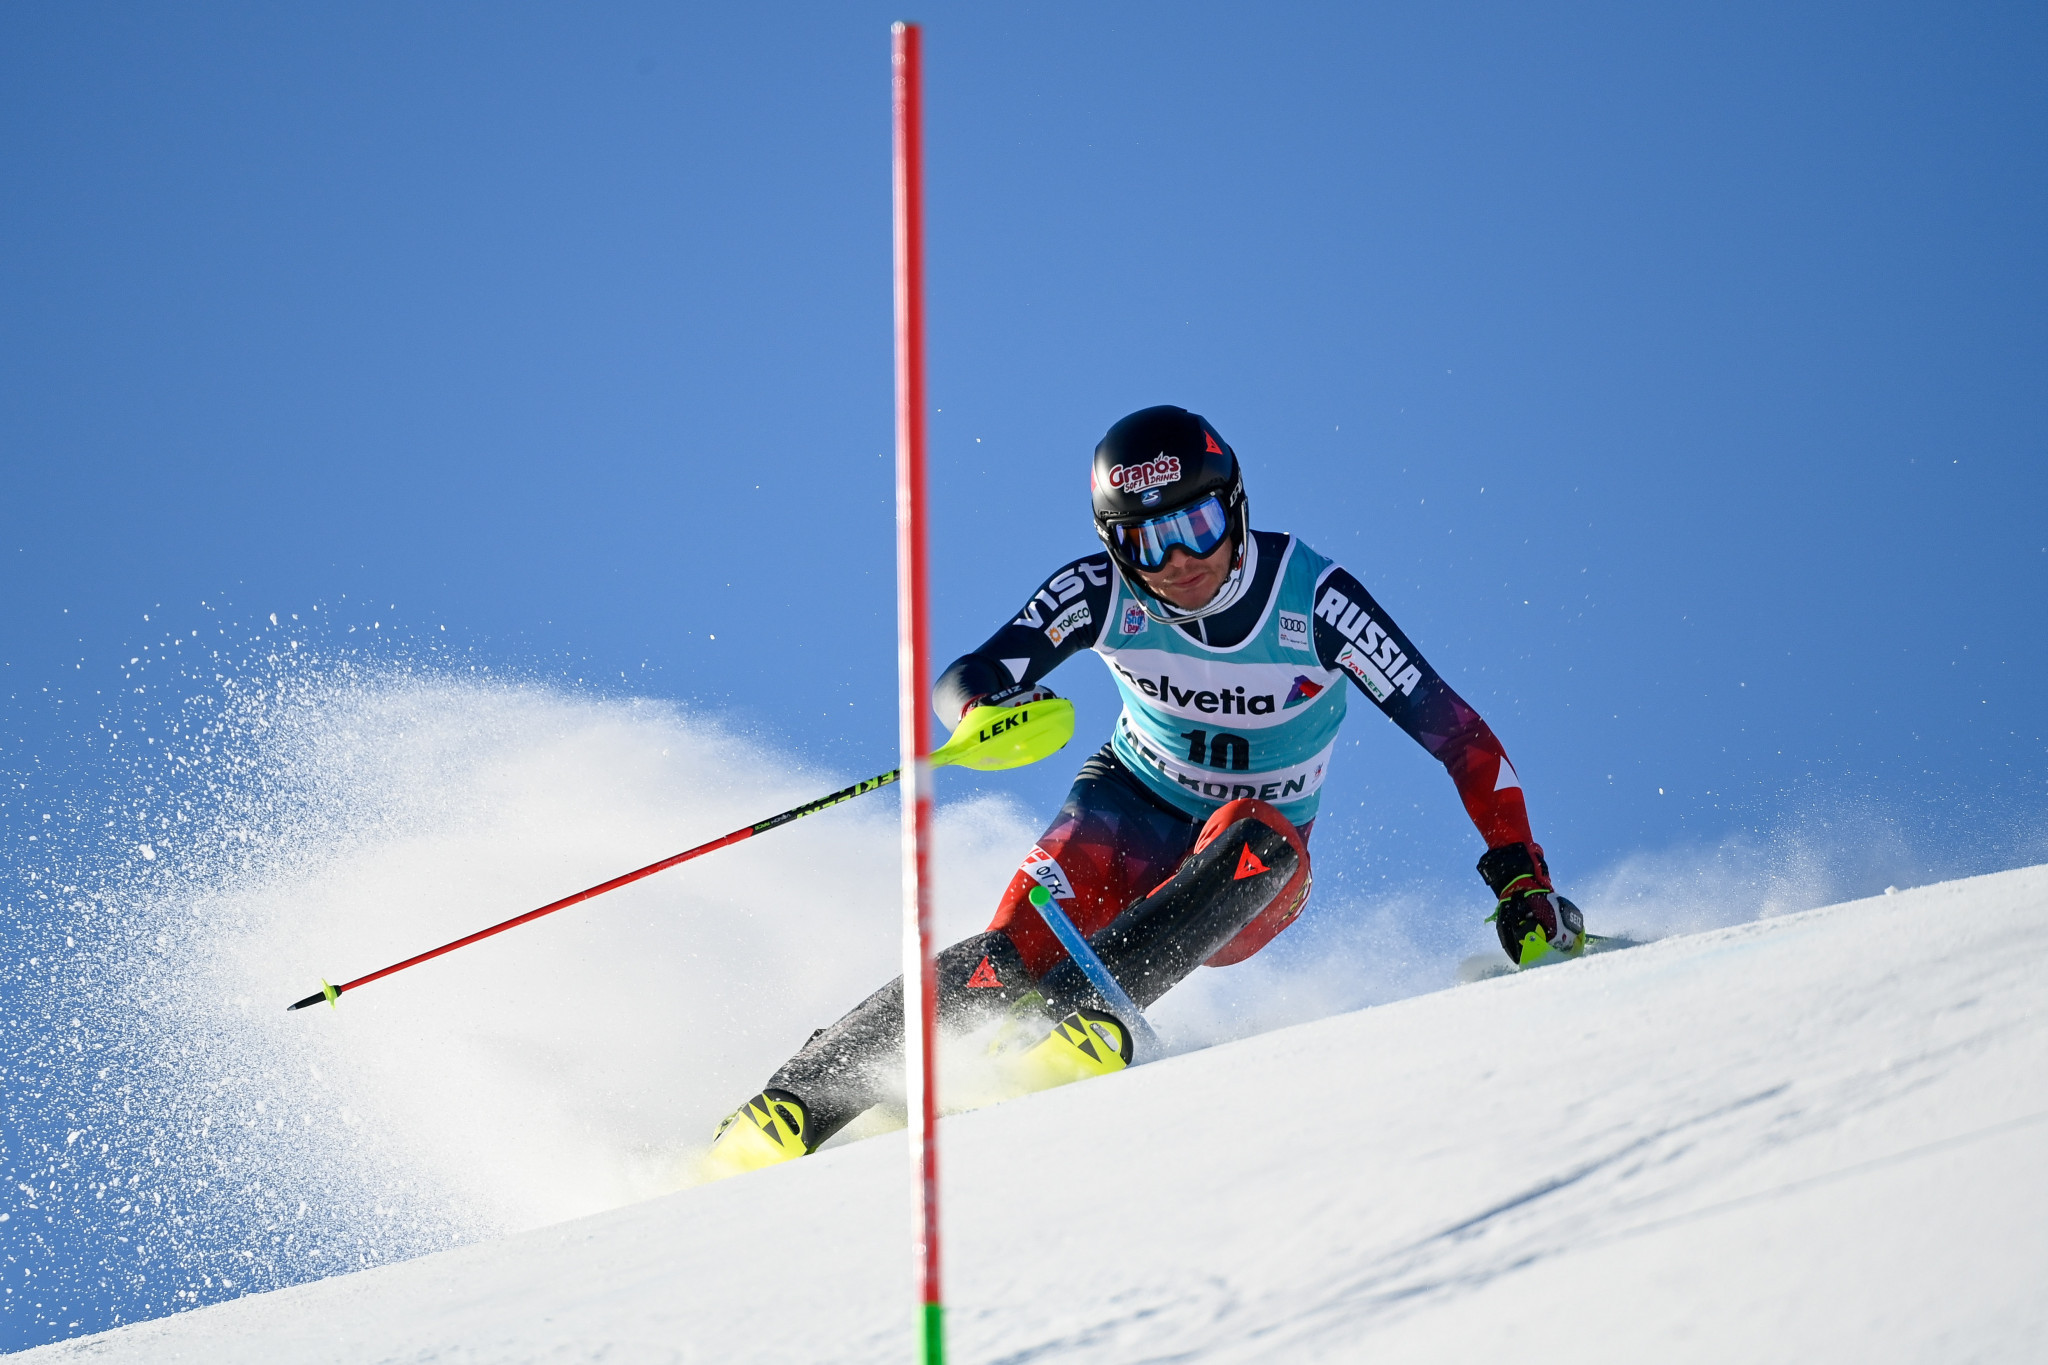 Russian athletes set to compete under FIS flag at upcoming World Championships